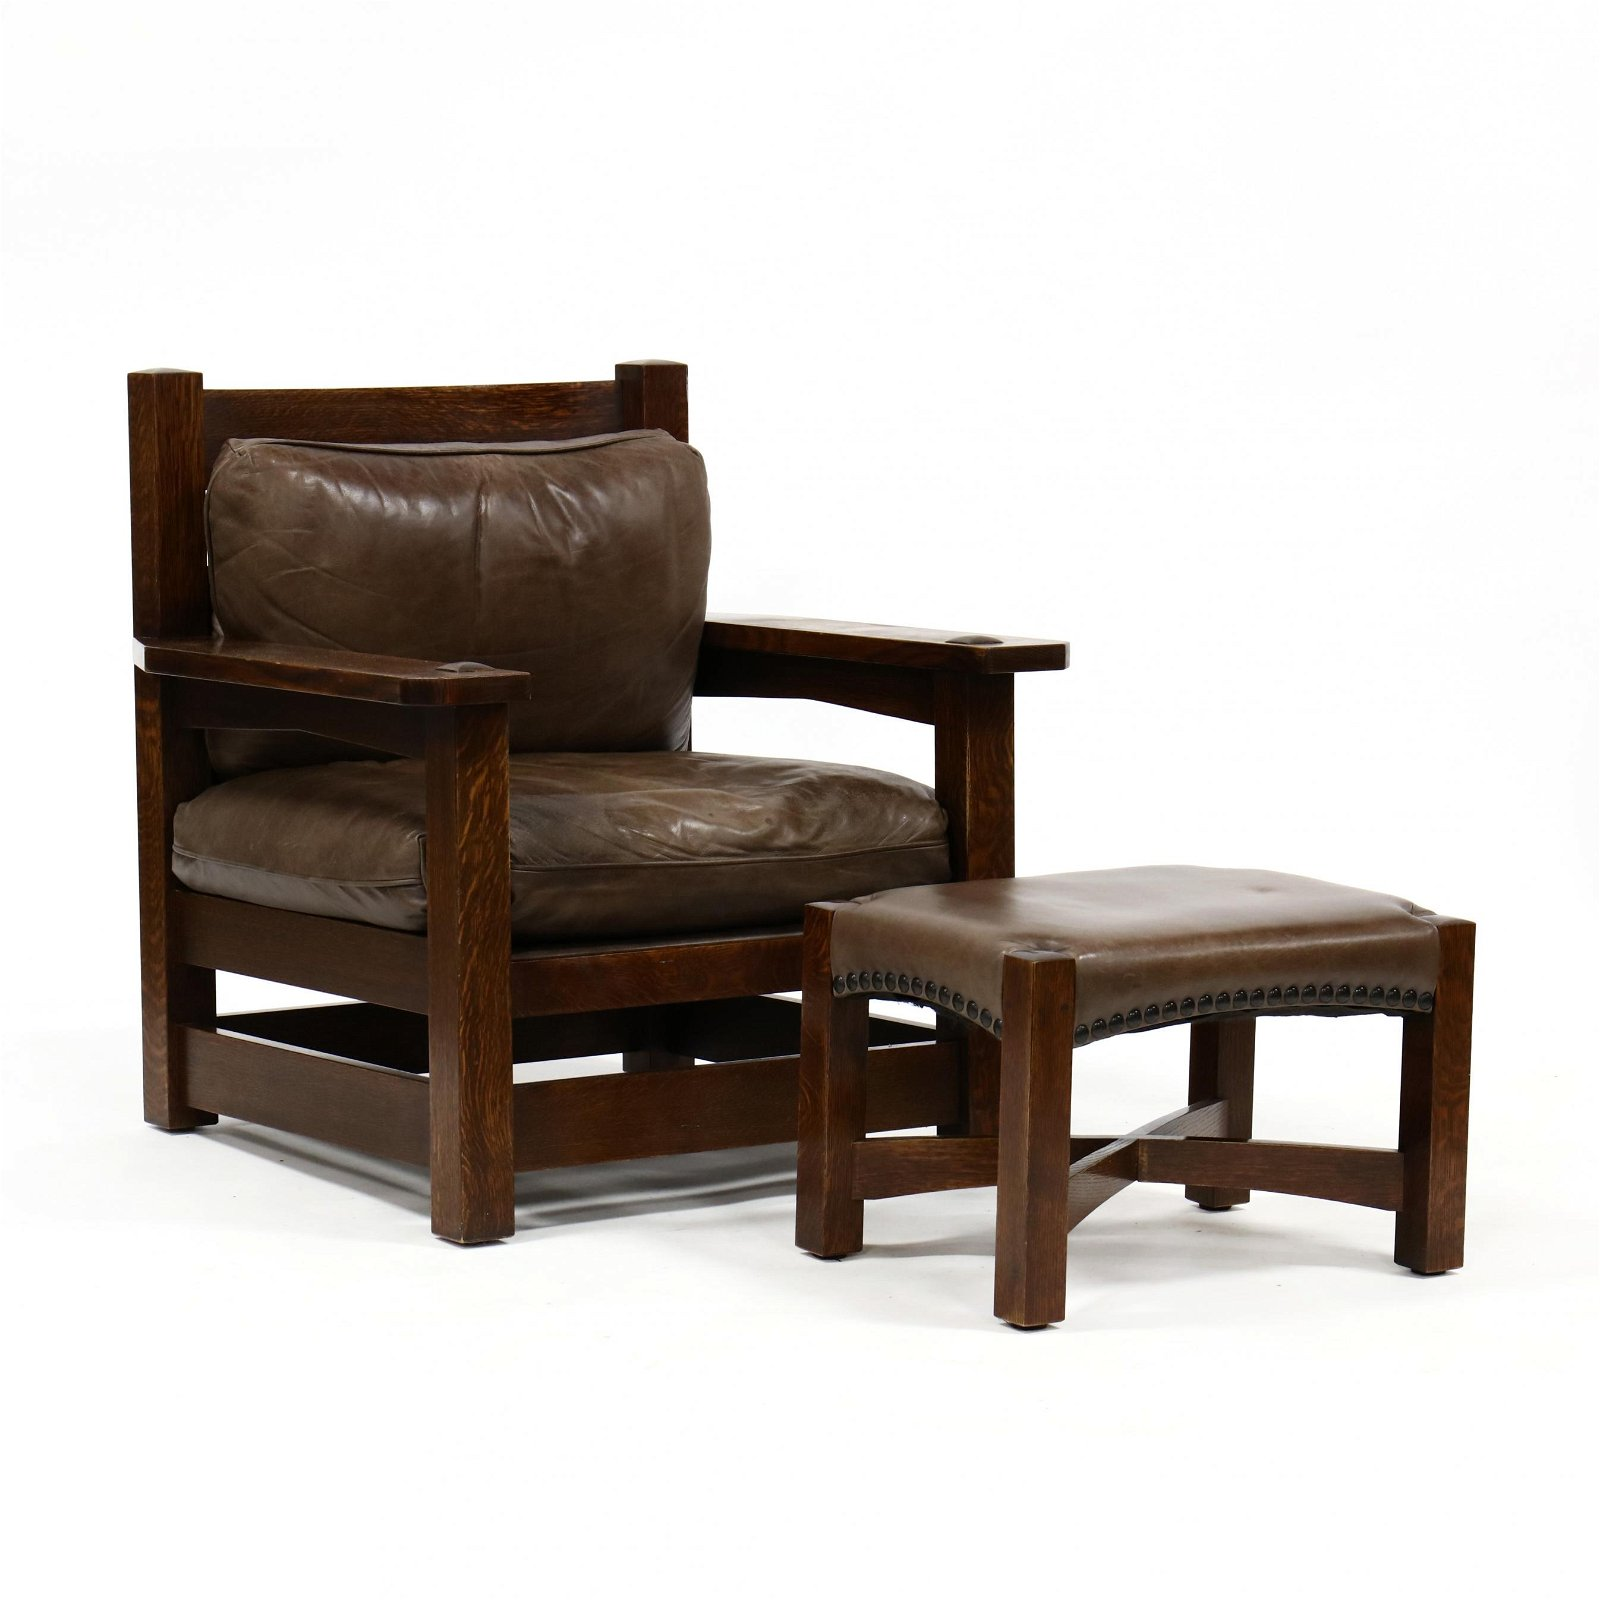 Stickley, Oversized Mission Oak and Leather Armchair